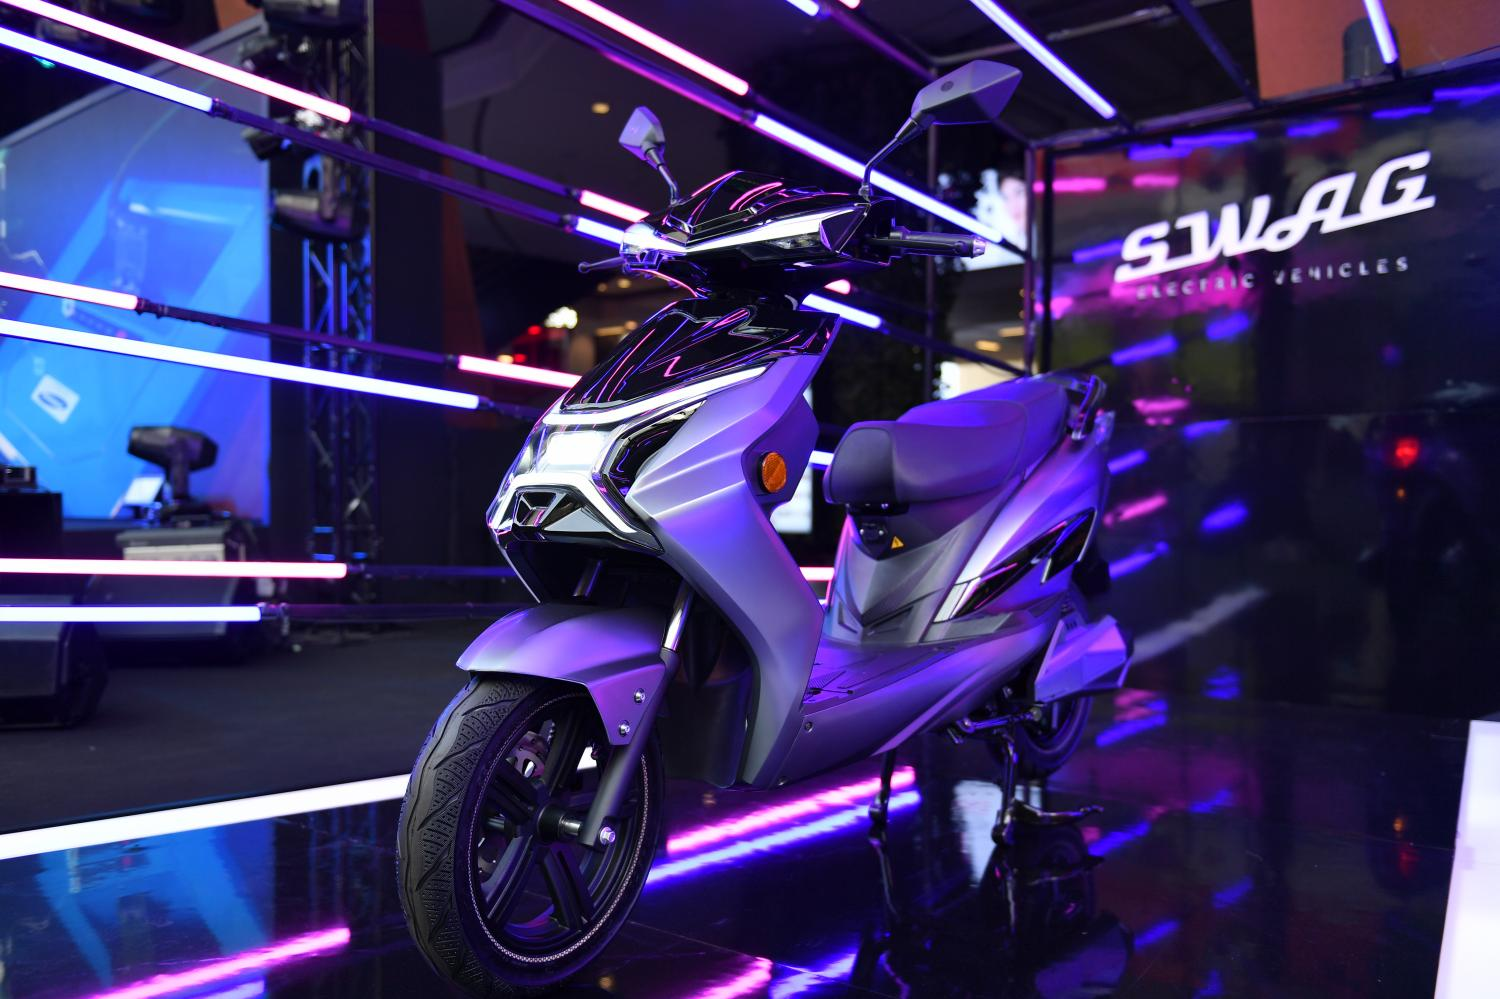 Swag EV Type X costs 65,900 baht.